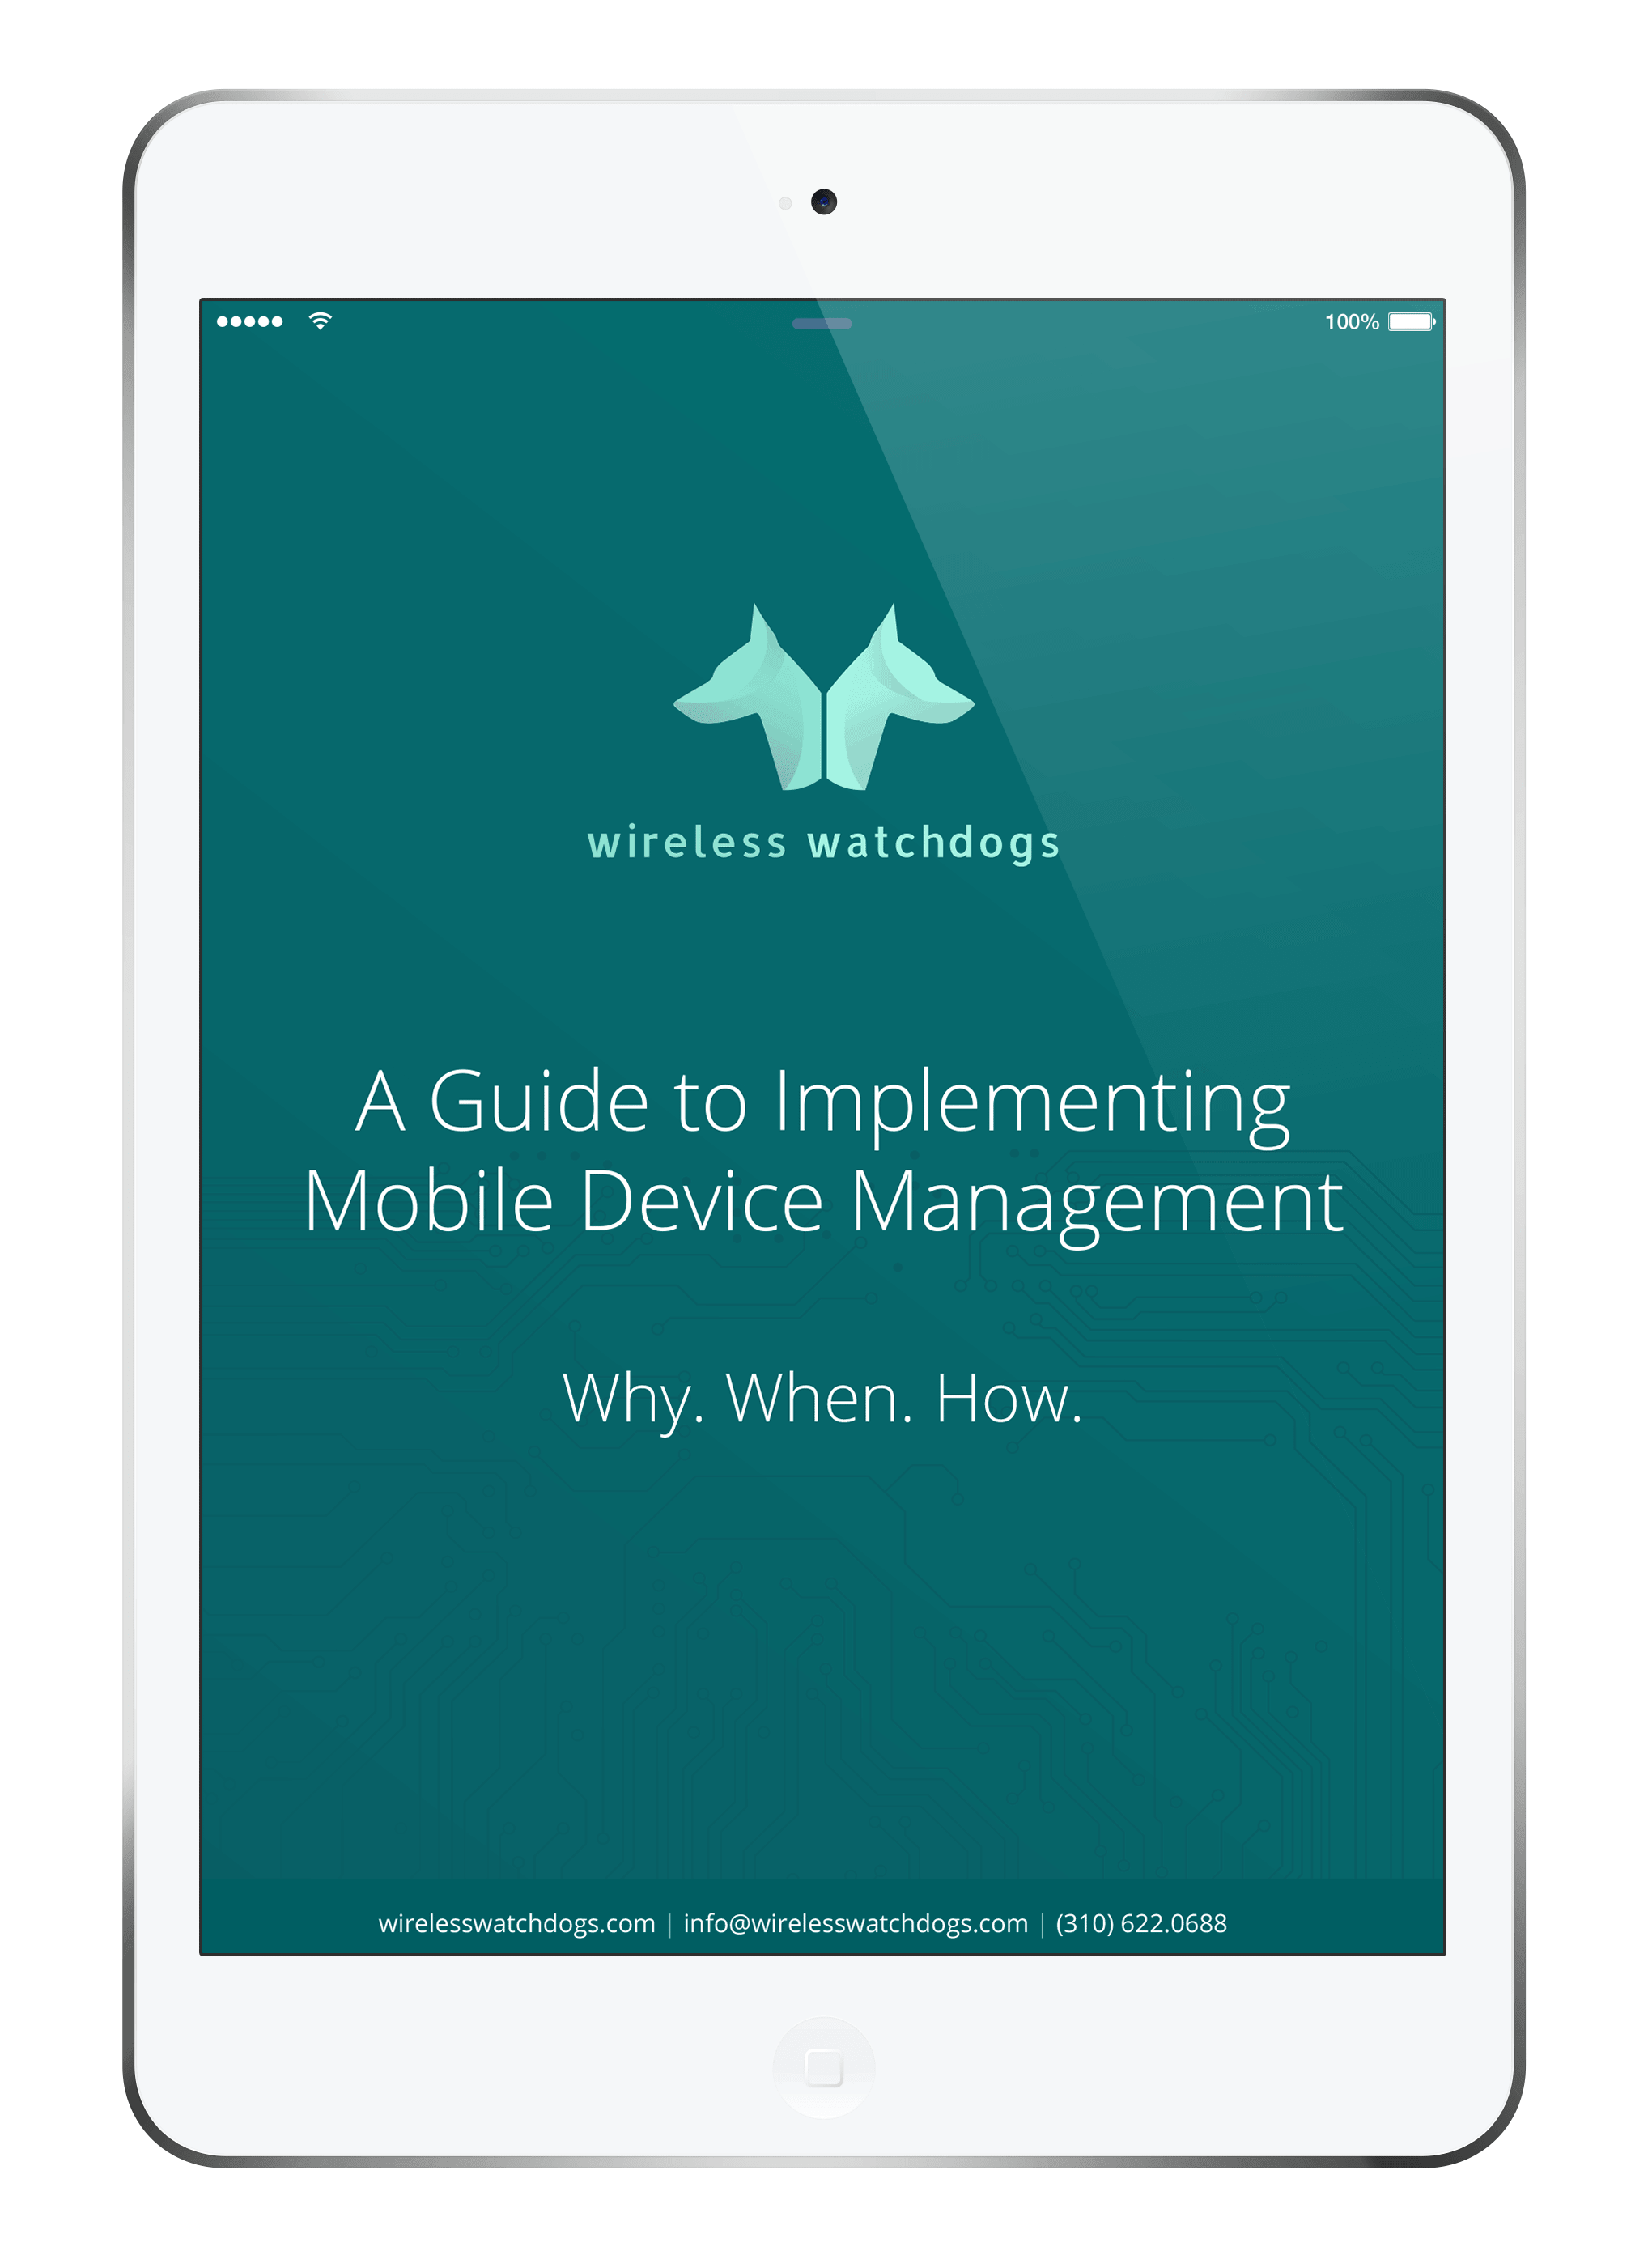 ww_mockup_implementing-mobile-device-management.png